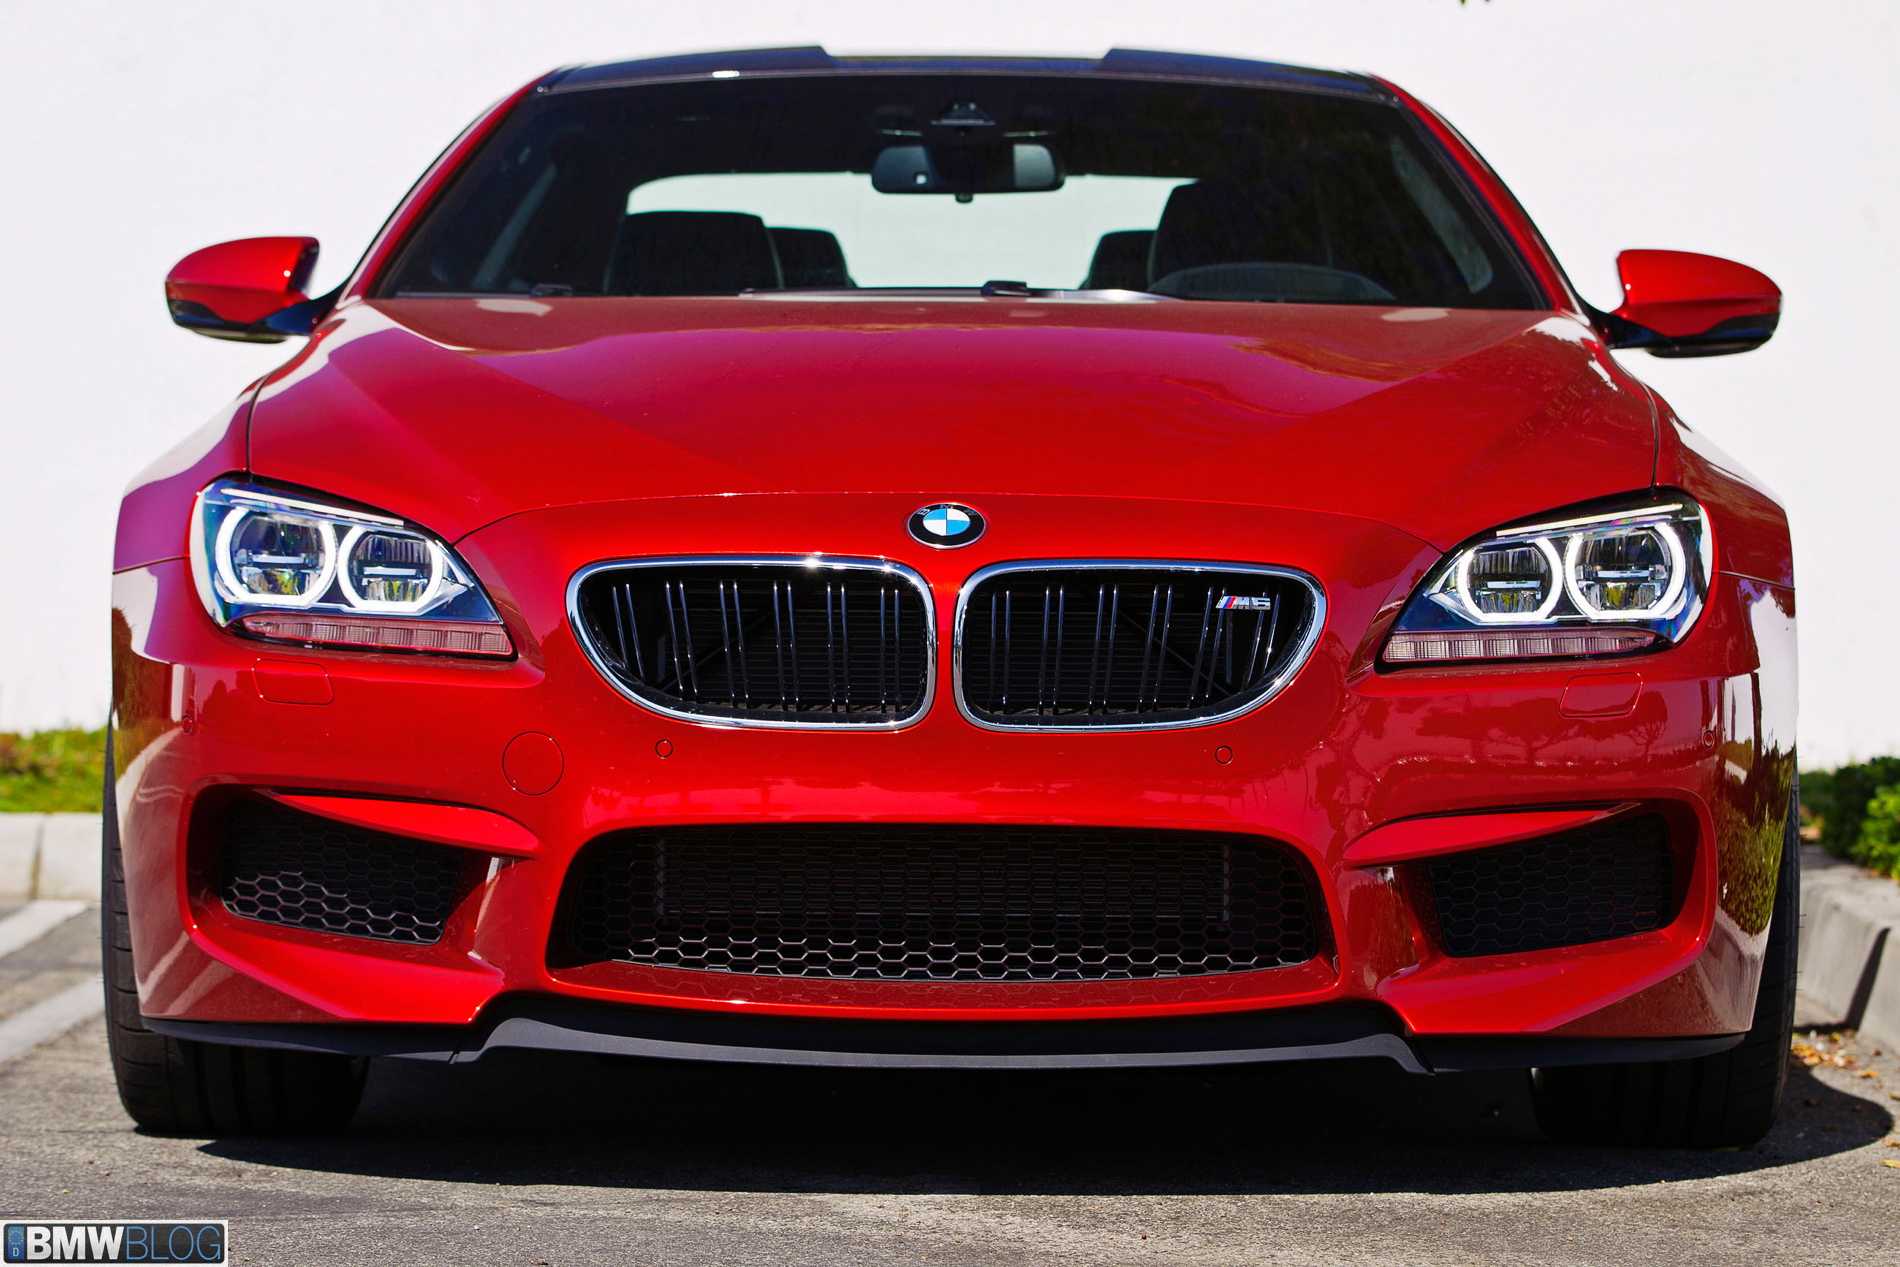 2013 bmw 6 coupe review021